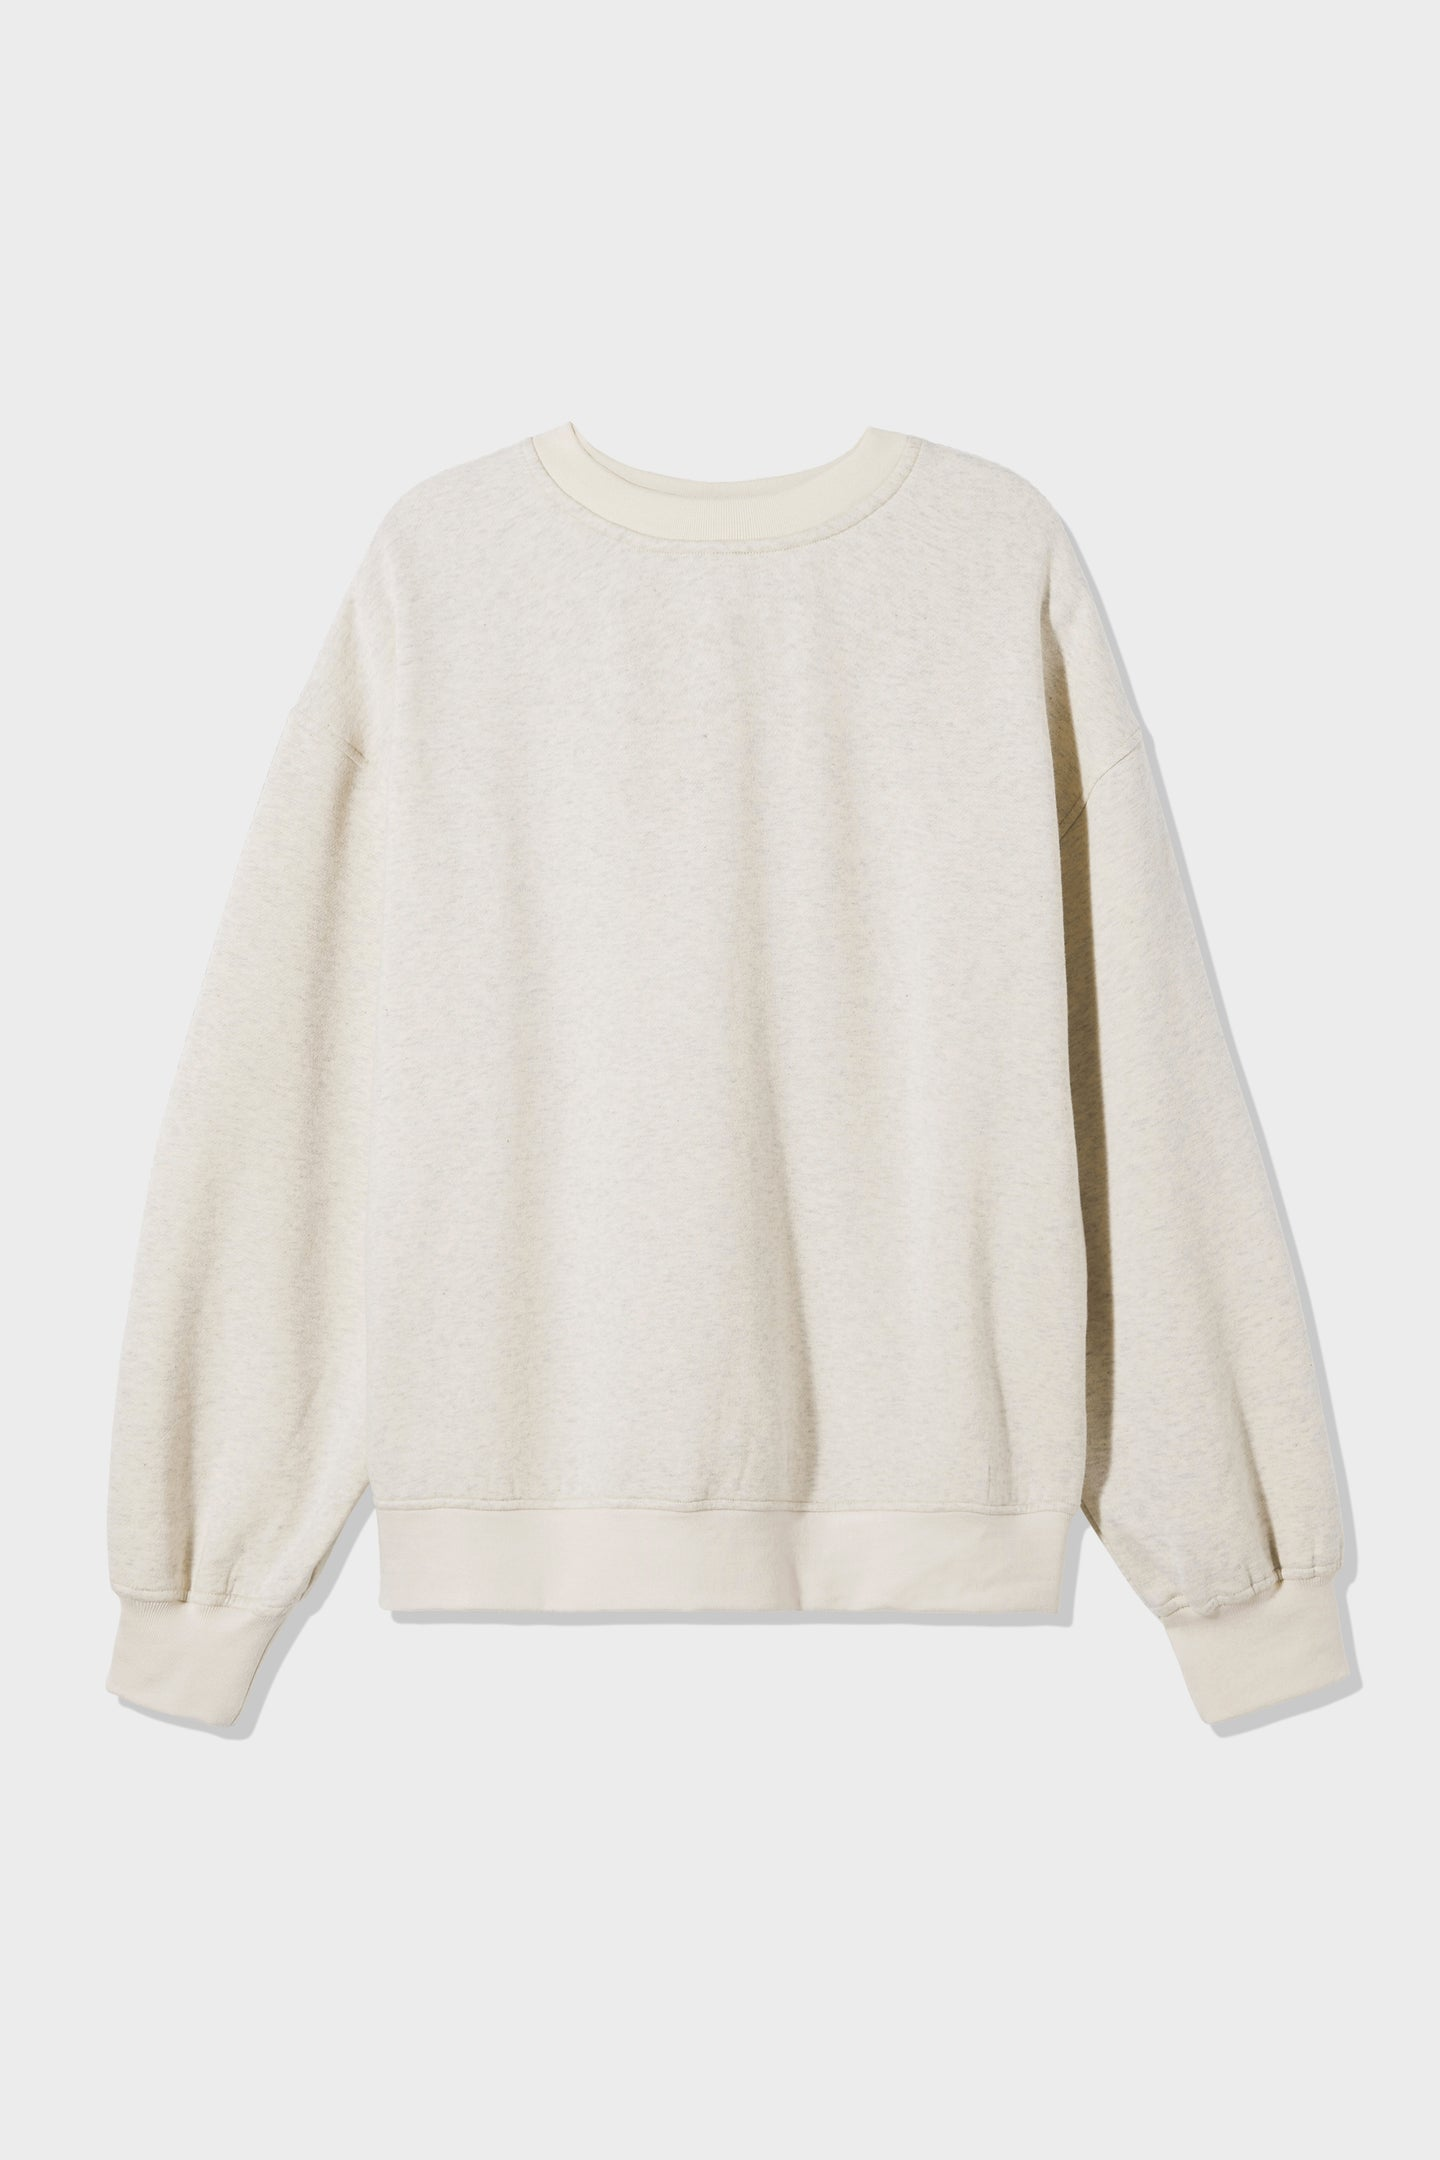 SIR the label UNISEX CREW NECK SWEATER MARLE